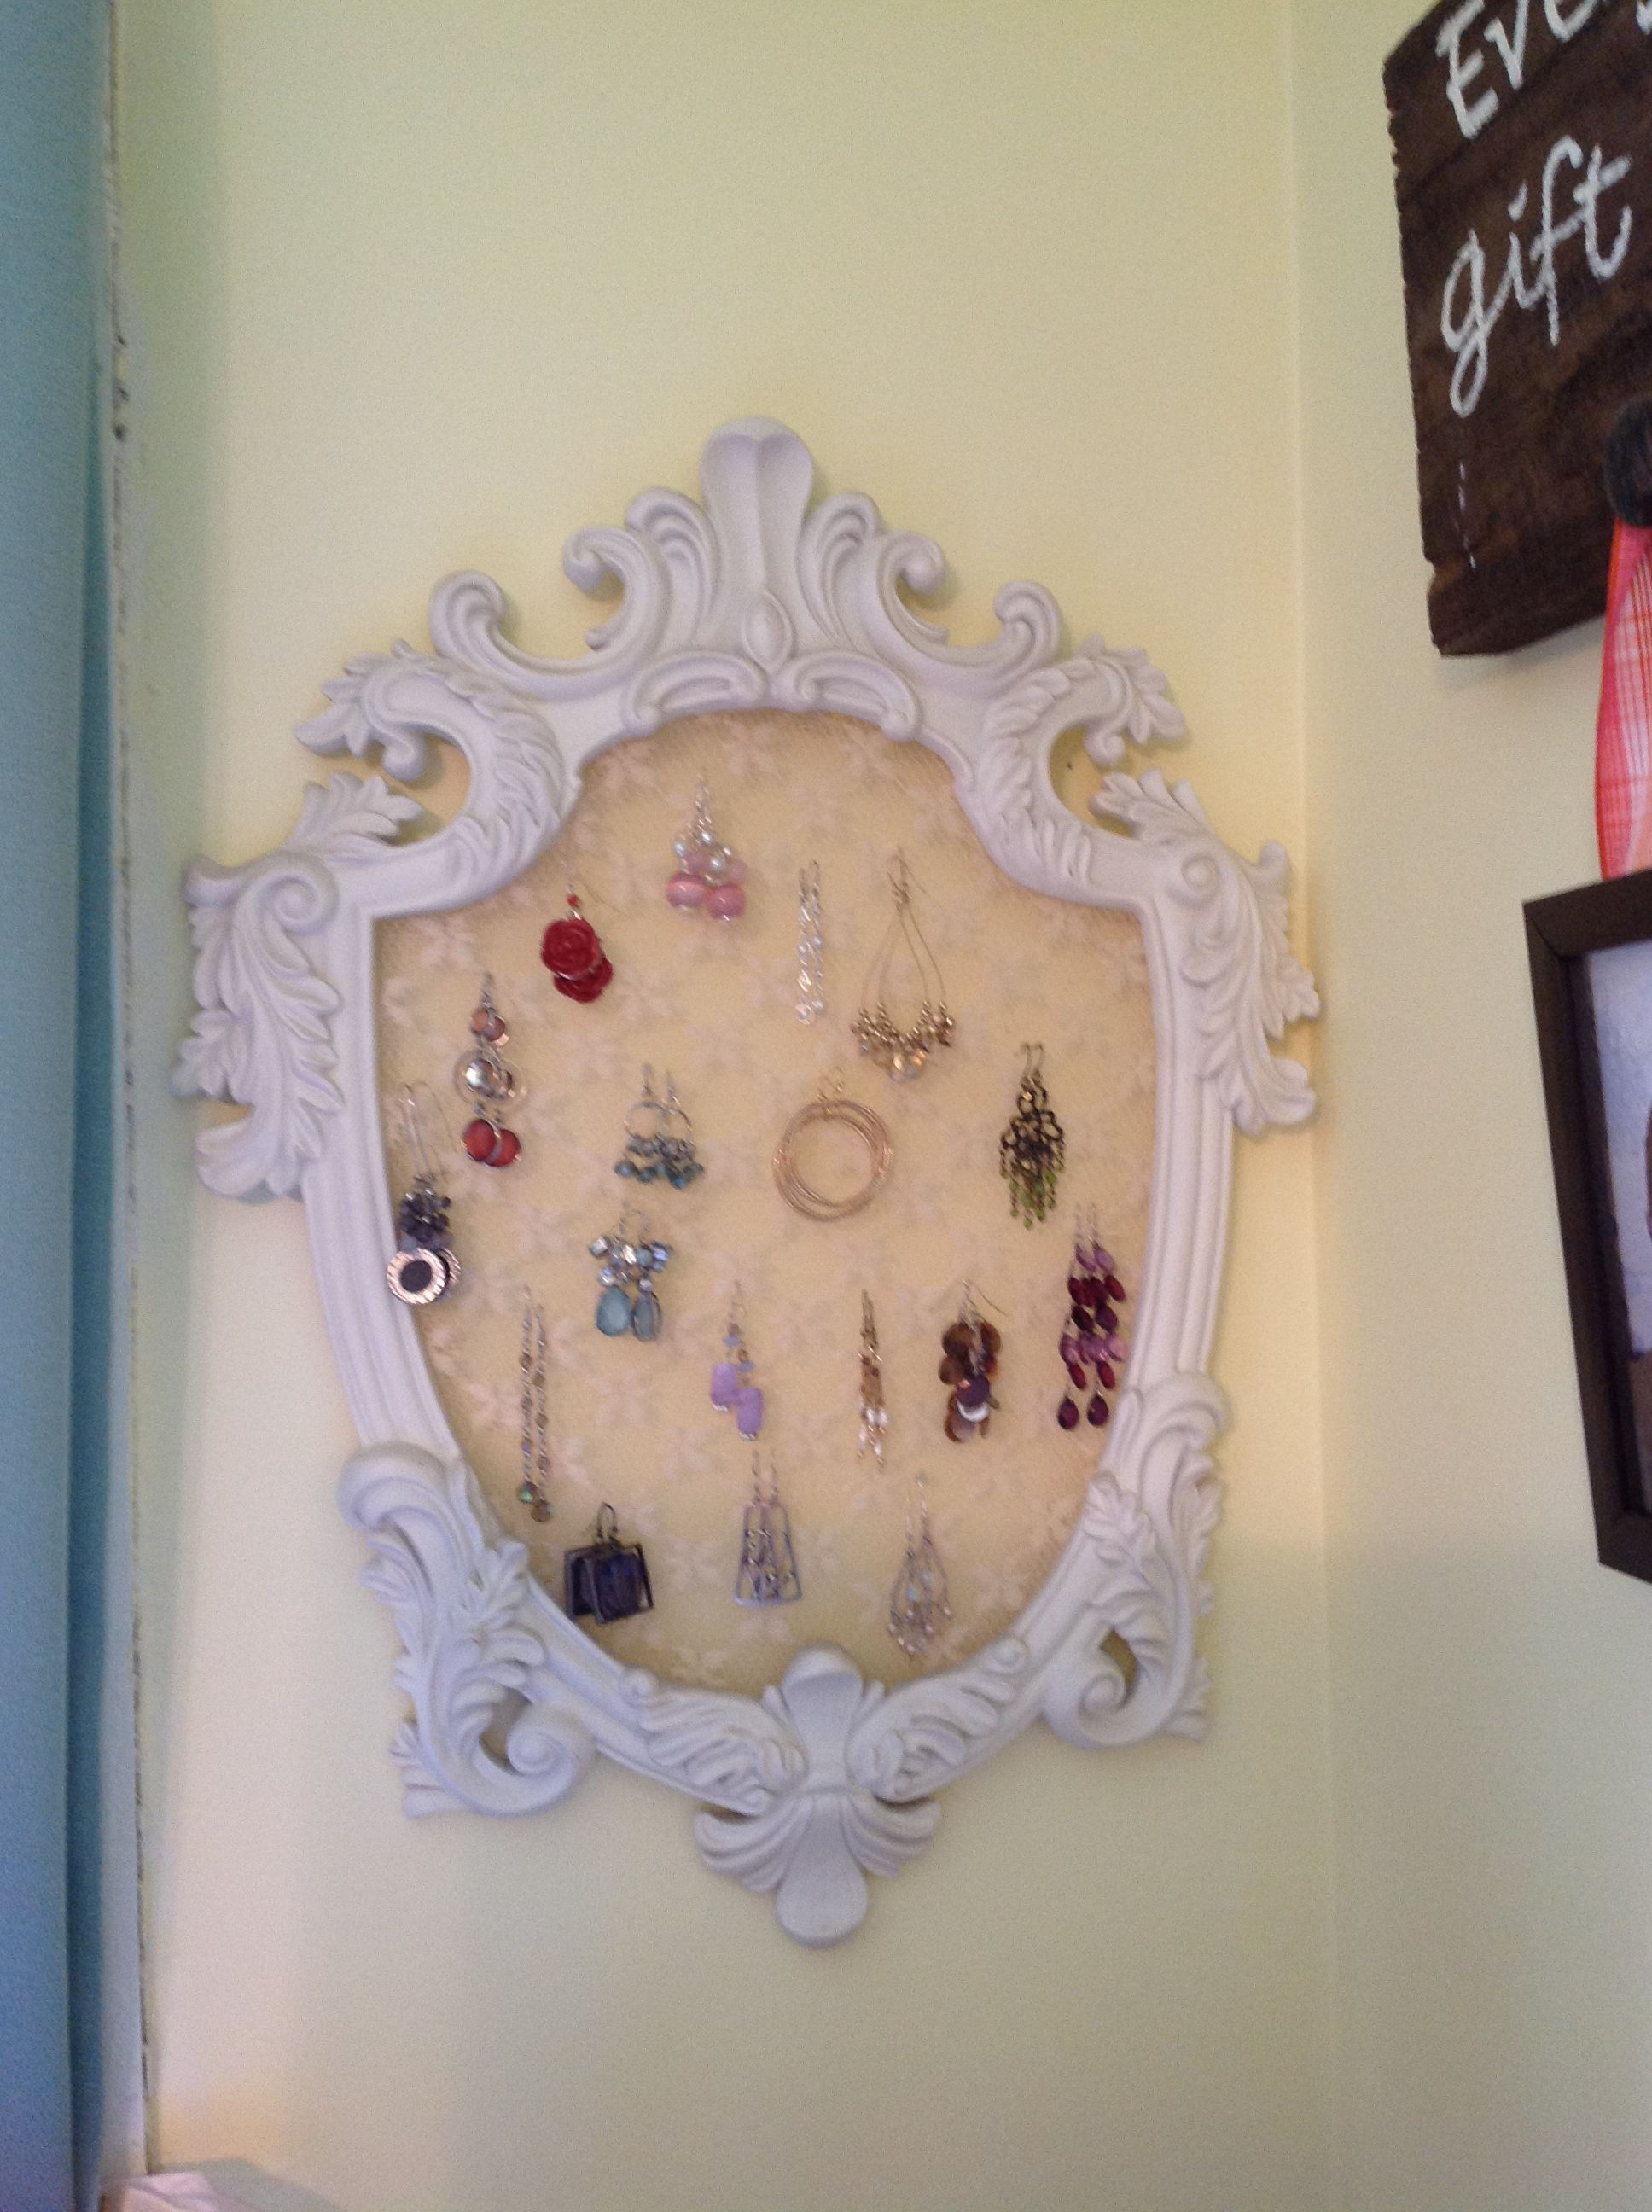 Old mirror frame, hot glue, and lace...earring organization!